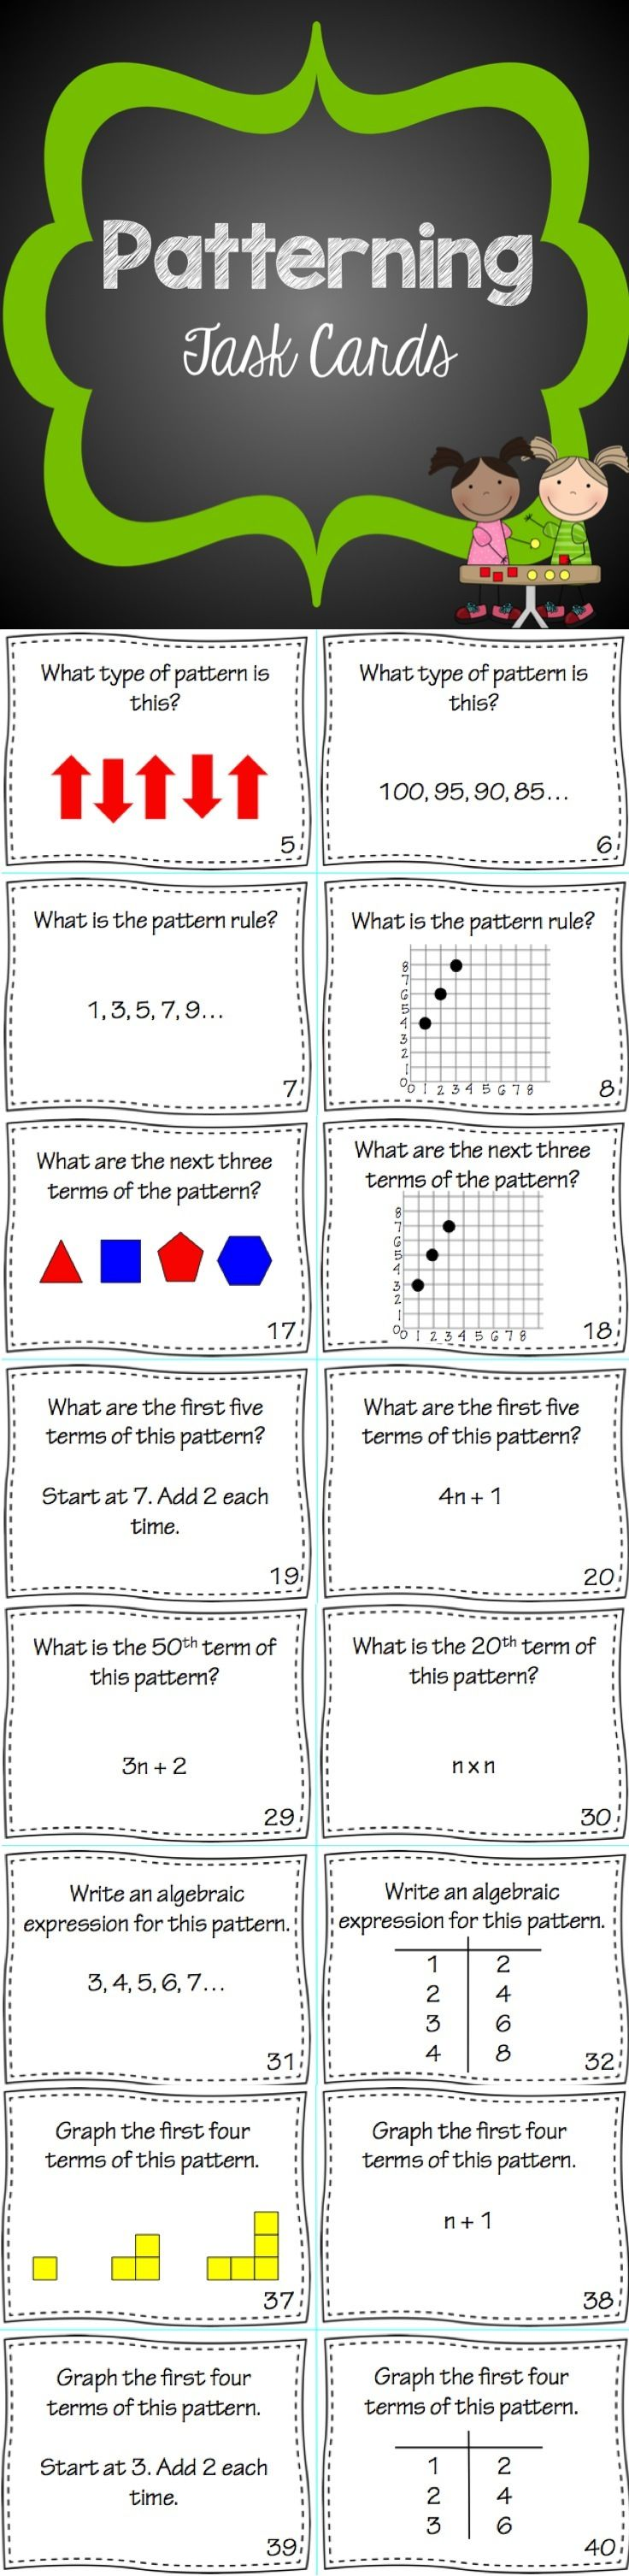 This set of 40 Patterning Task Cards reviews the concepts of pattern rules, finding the next term in a pattern, using algebraic expressions to describe patterns and graphing patterns. Wether you use this as a unit introduction, math centre, or review activity, your students will love this activity. An answer sheet and answer key are included.